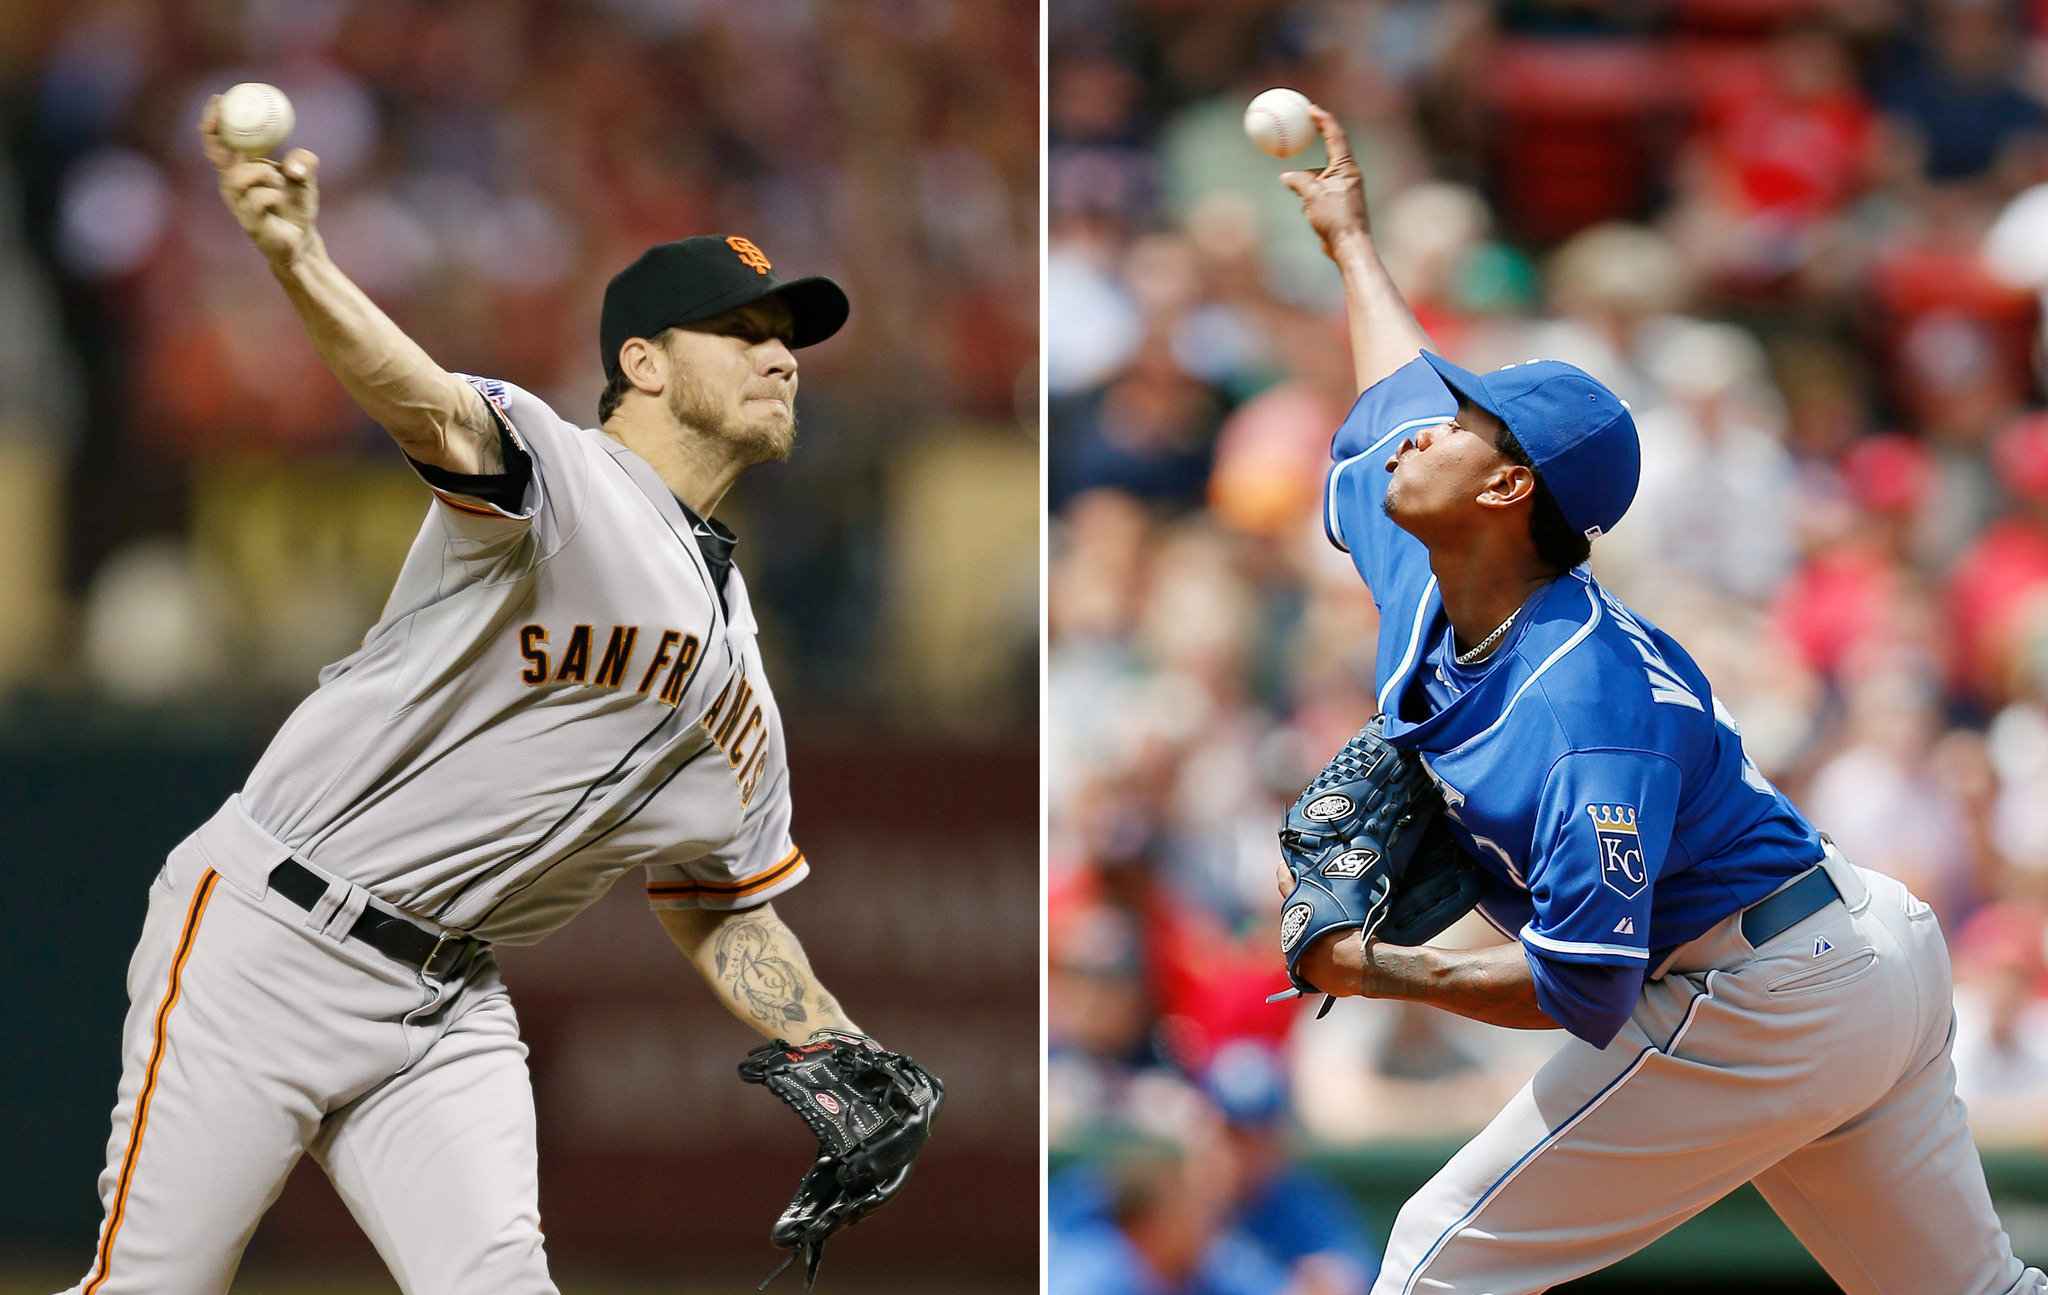 World Series 2014: Royals' Yordano Ventura, Giants' Jake Peavy set for Game 2 showdown